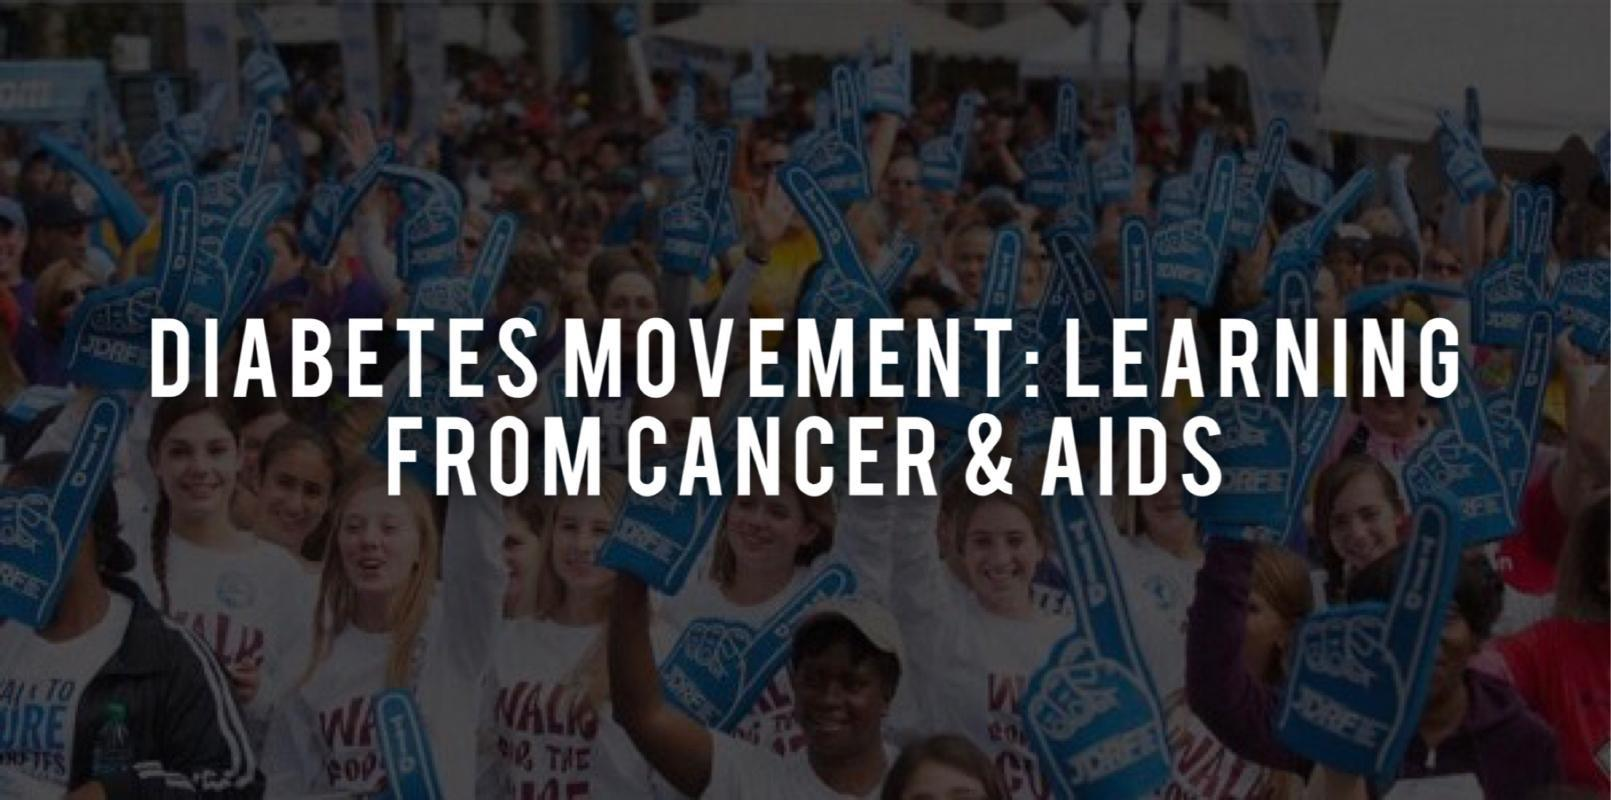 2 Things People With Type 1 Diabetes Can Learn From The Cancer & AIDS Community